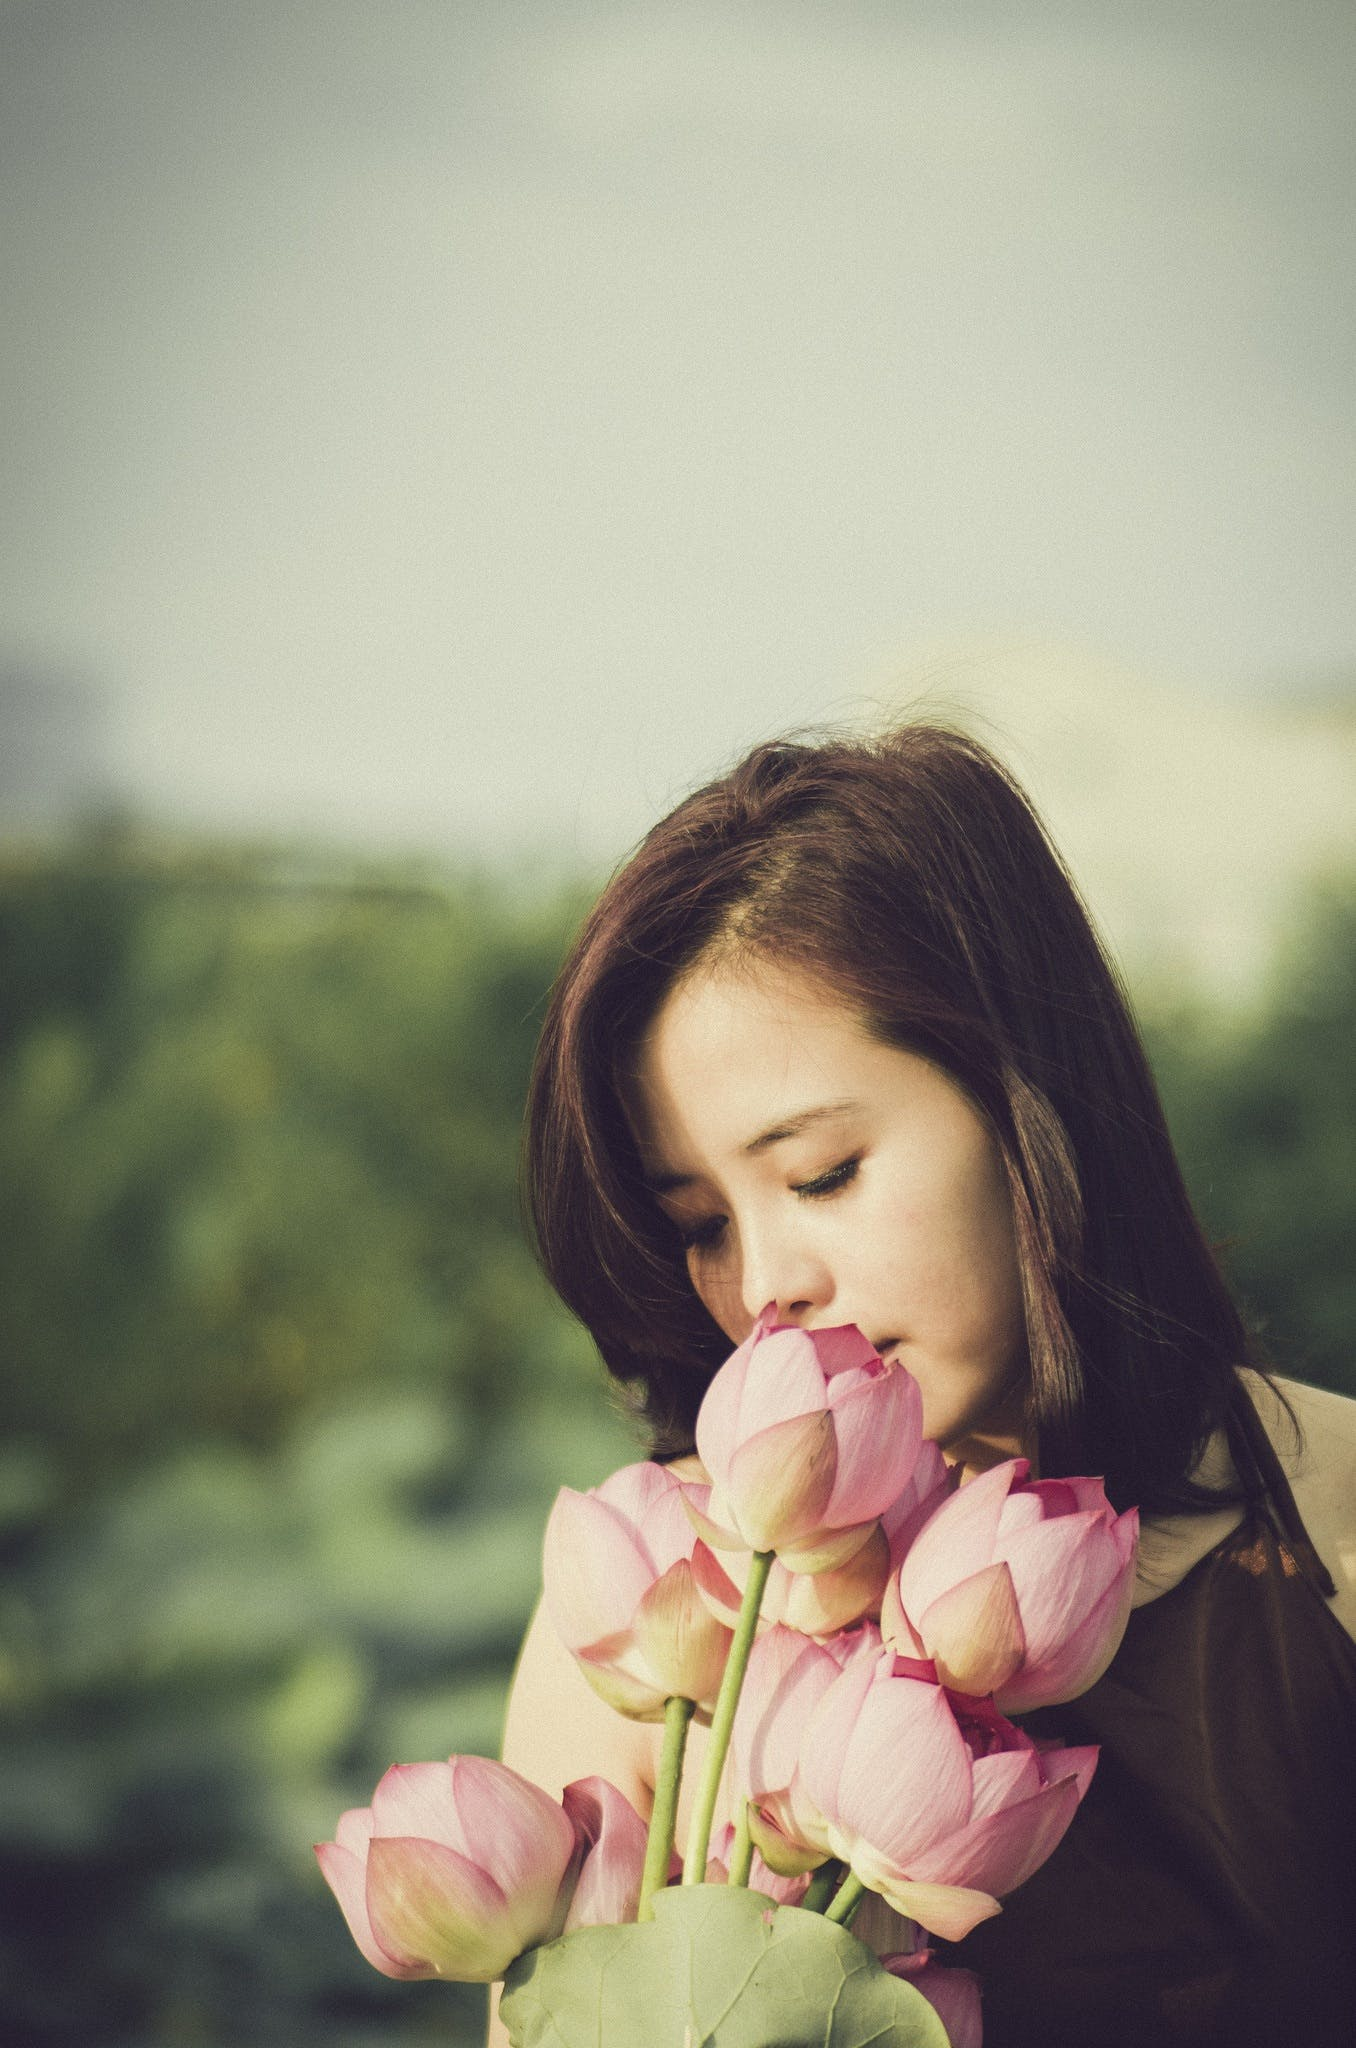 Woman in Brown and White Sniffing Pink Flowering Plant